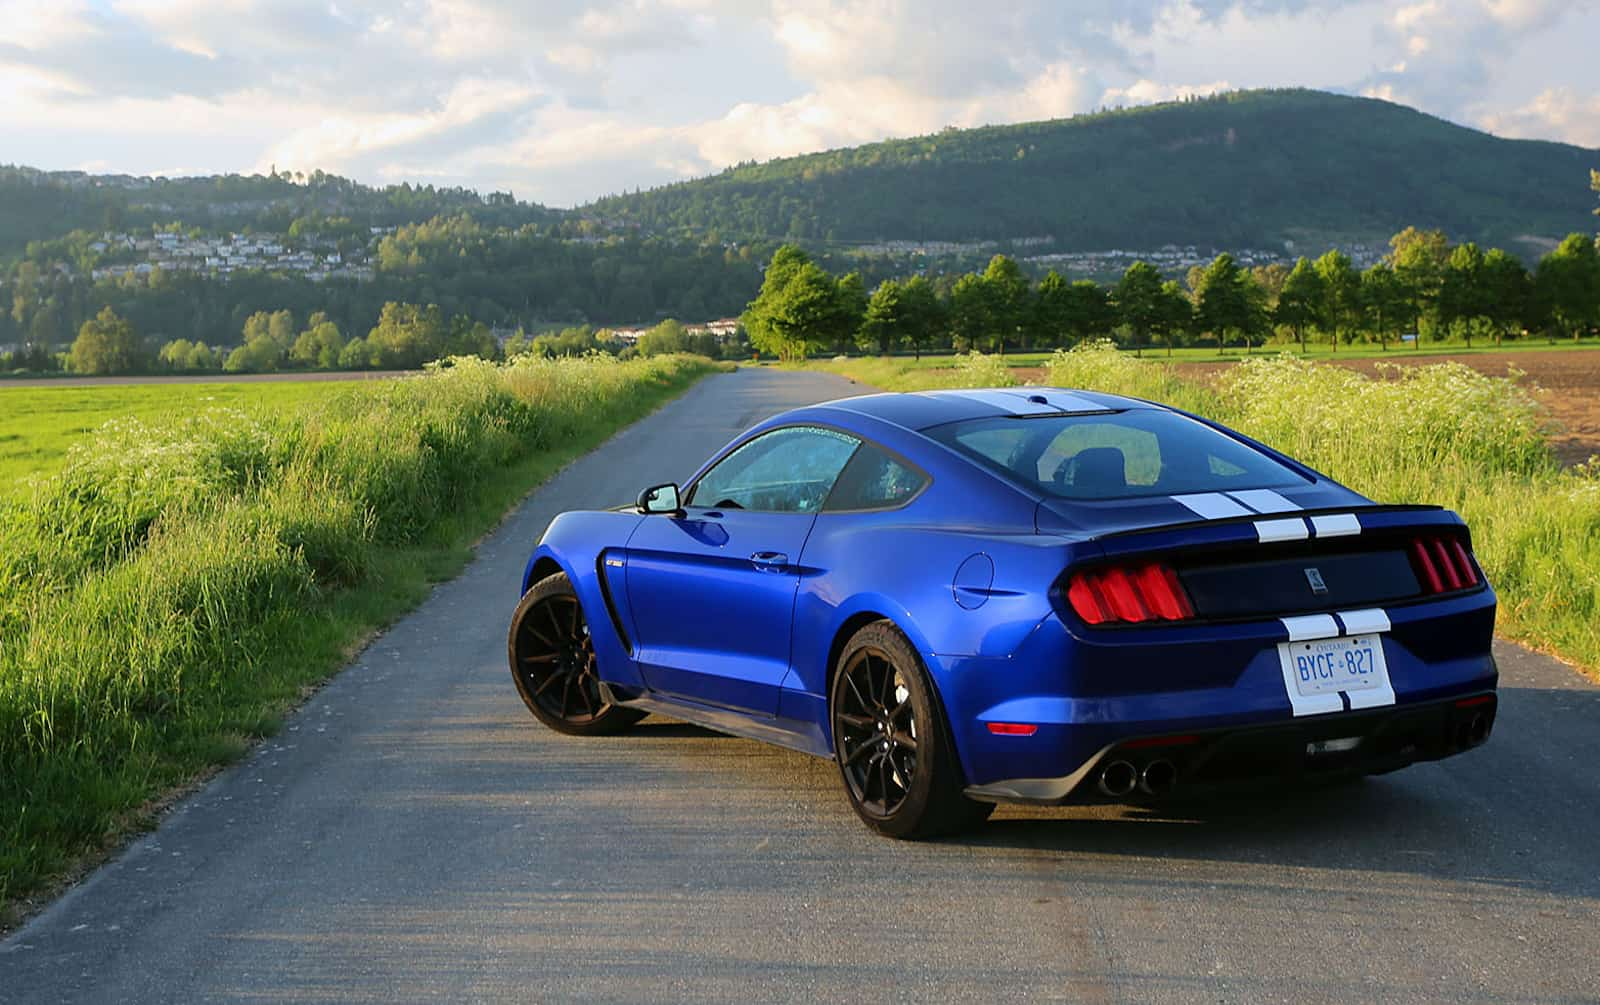 2016 Ford Shelby Gt350 Review Modern Muscle Car Perfection